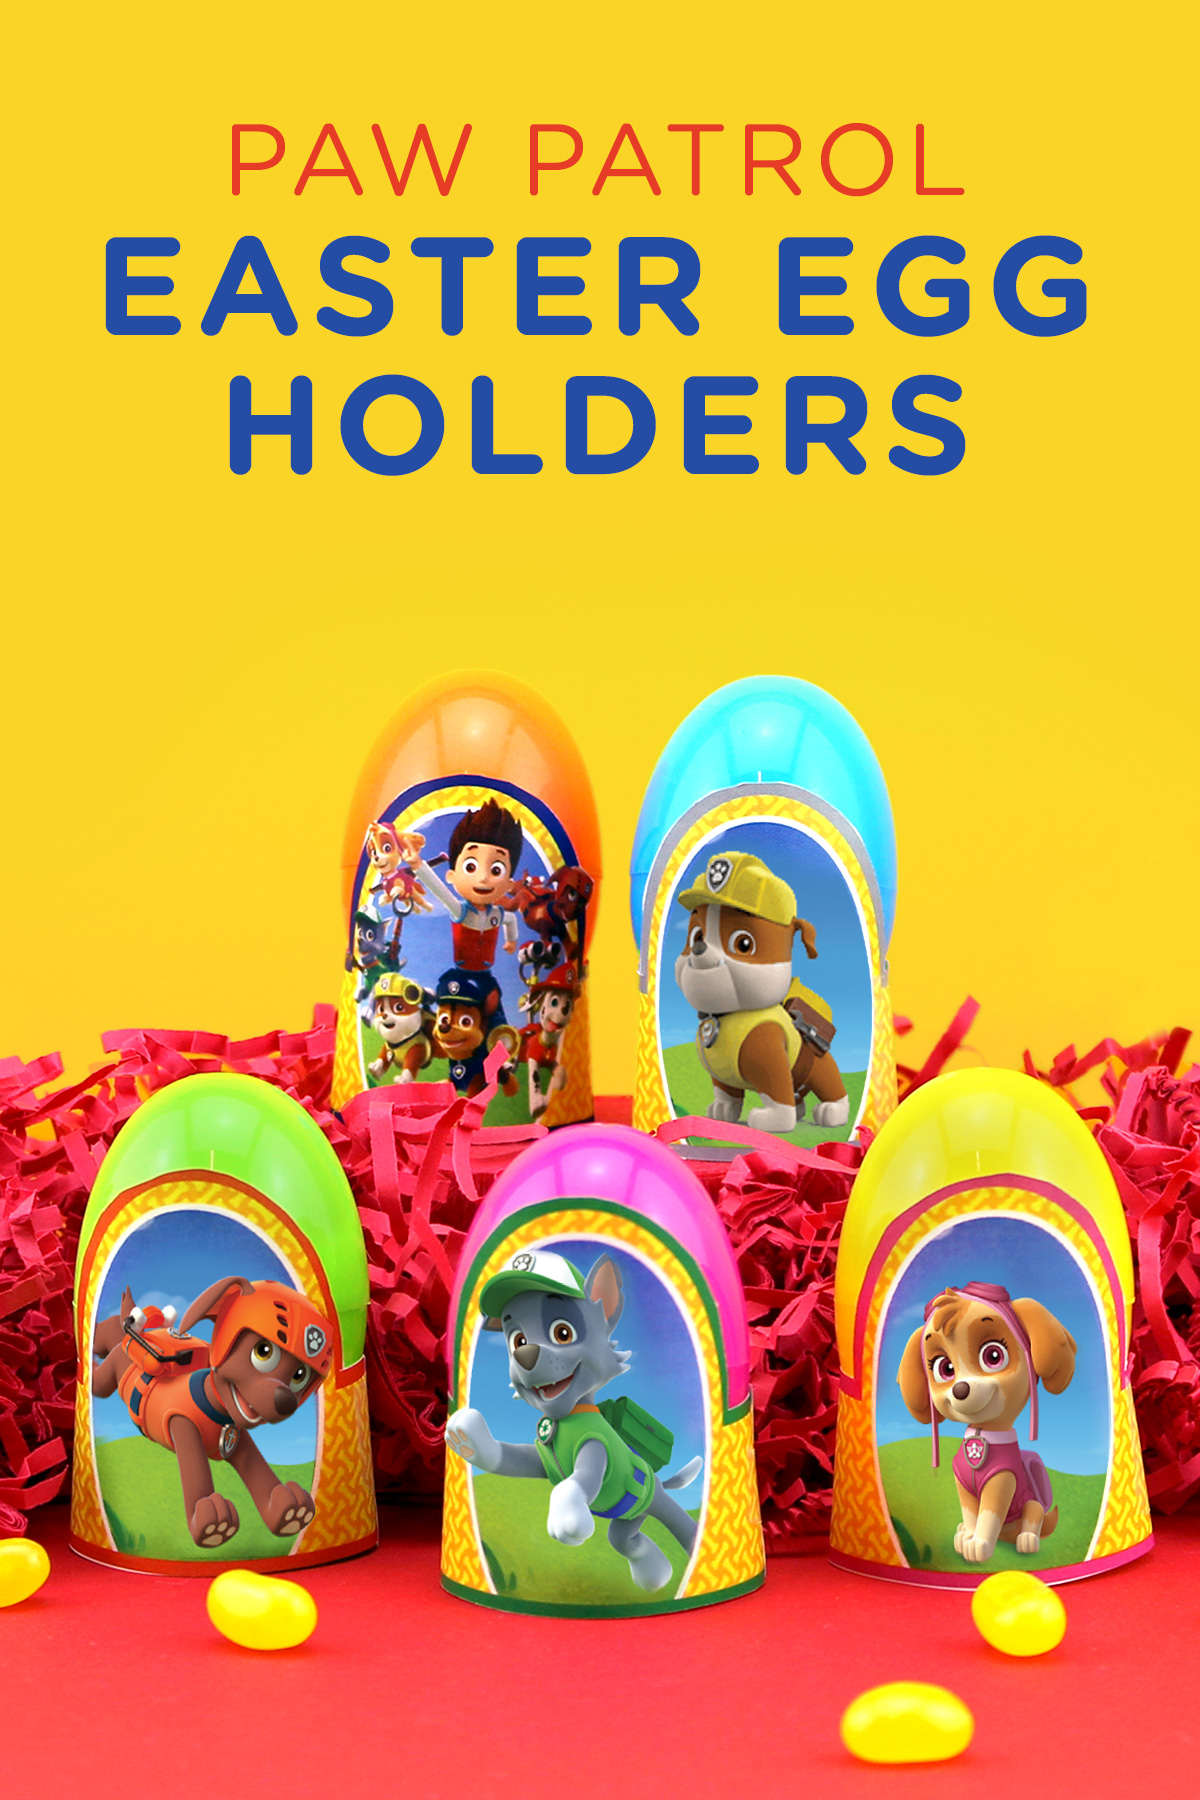 Paw Patrol Printable Easter Egg Holders Nickelodeon Parents